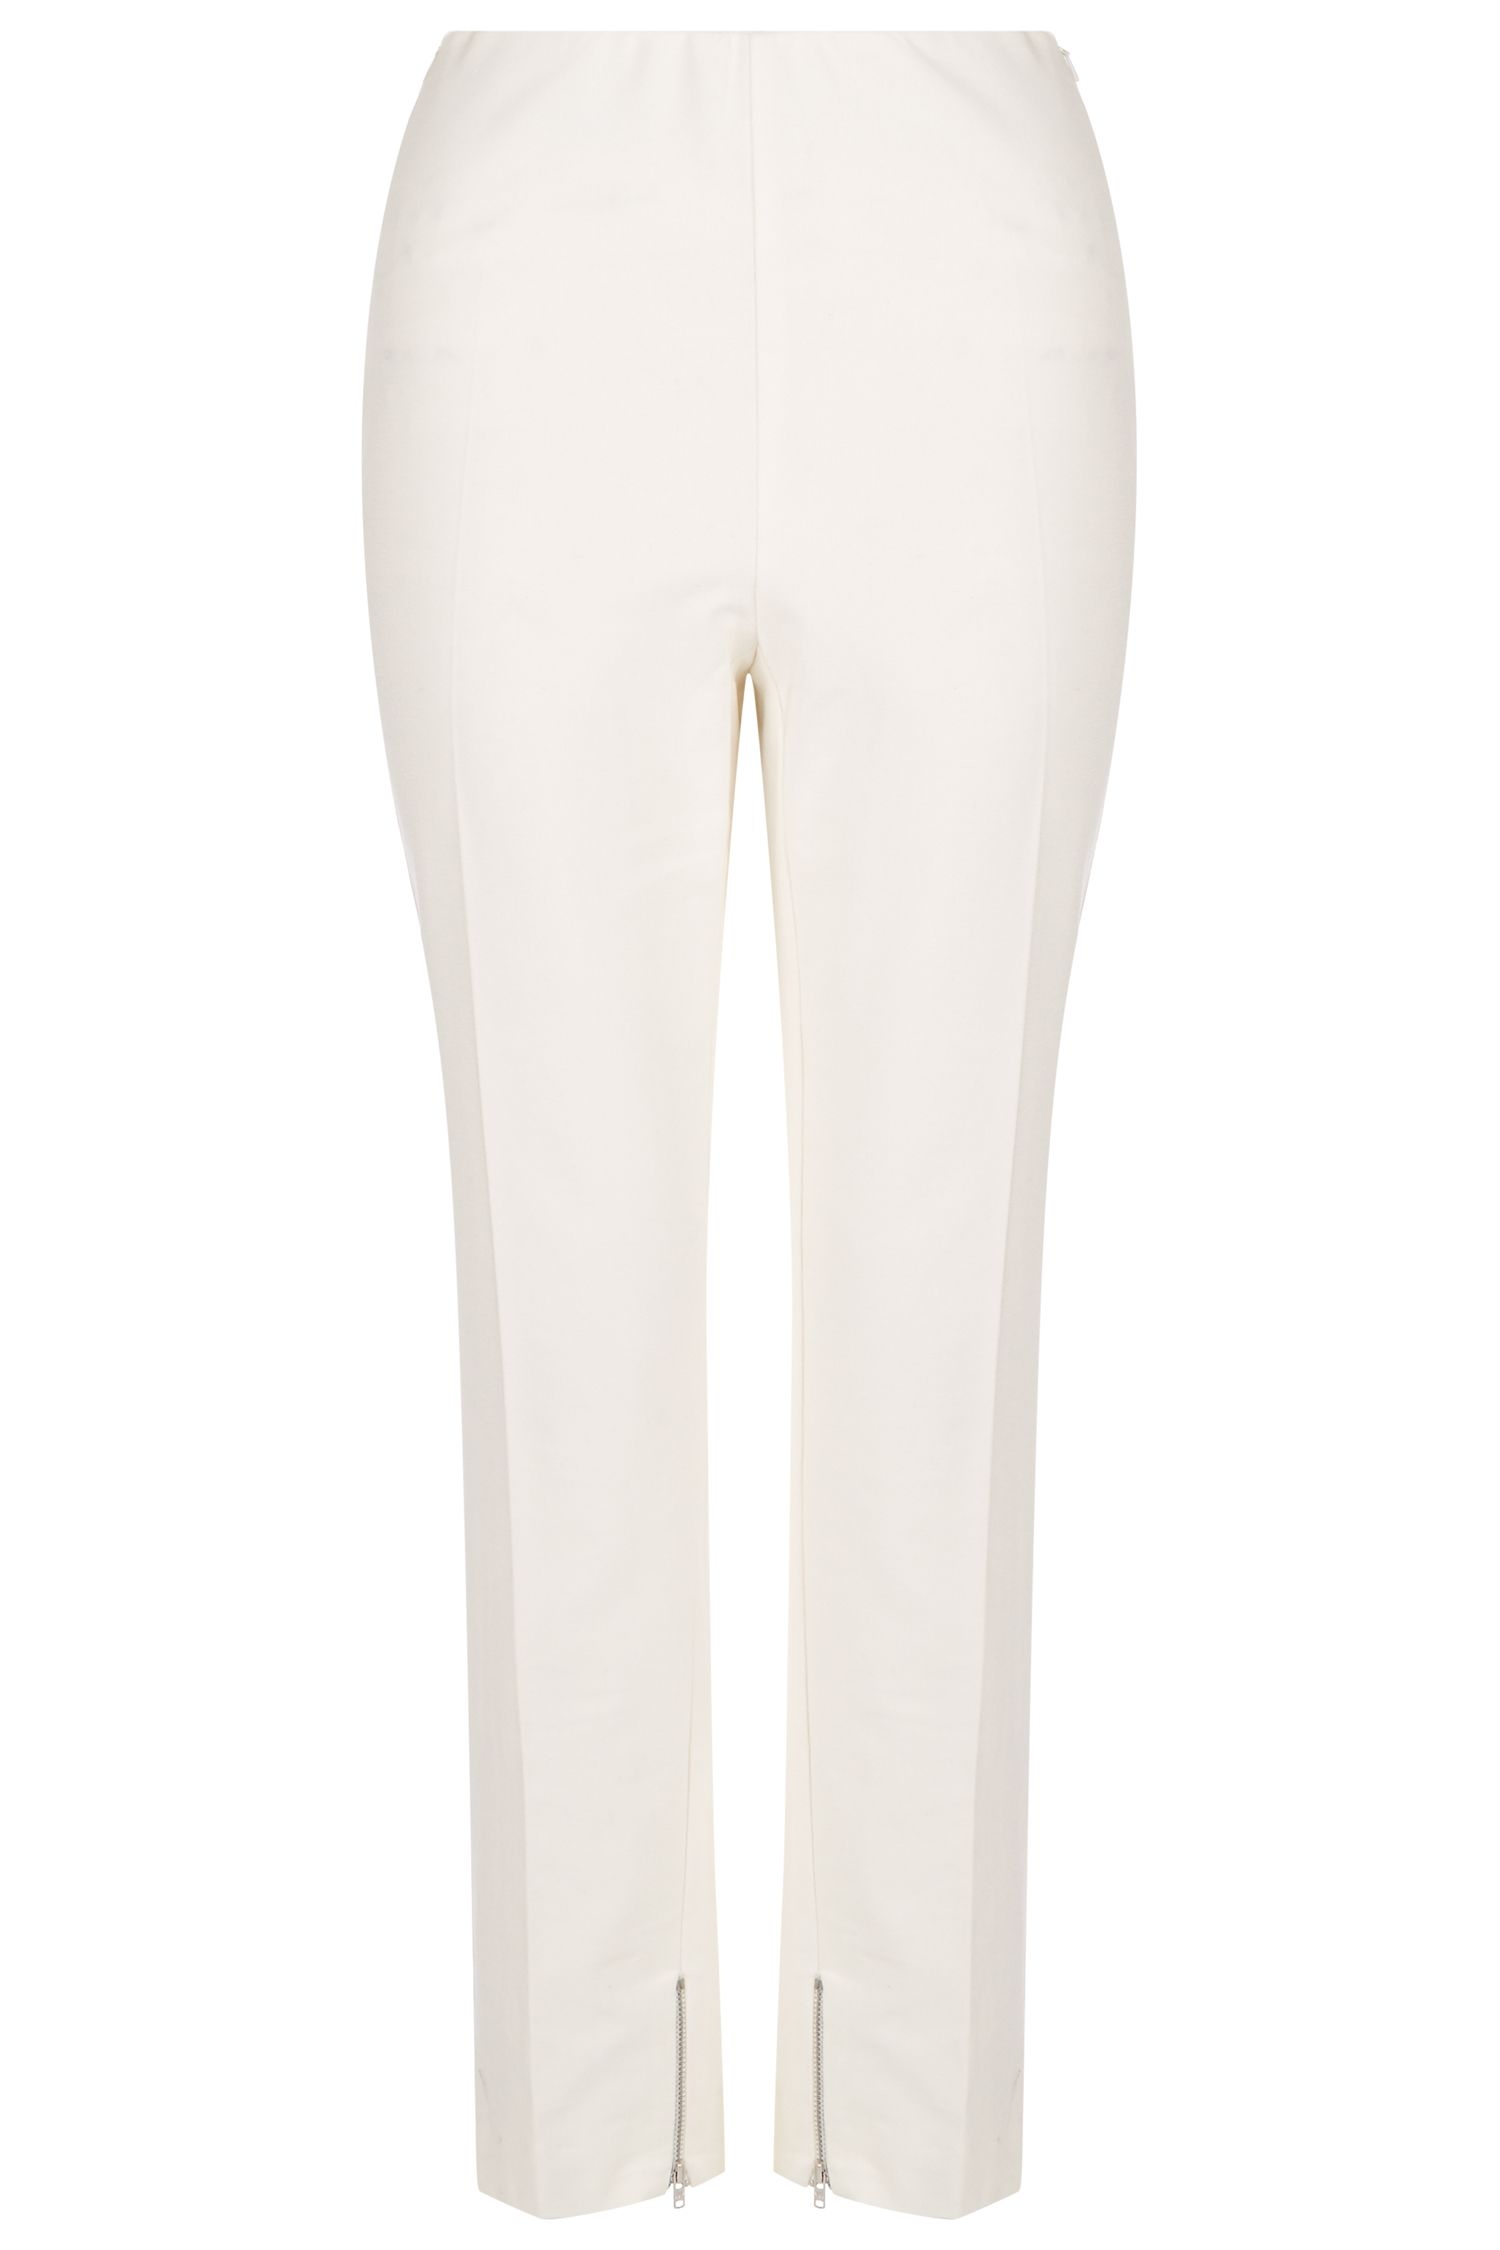 Damsel in a Dress Cropped Trousers, Cream